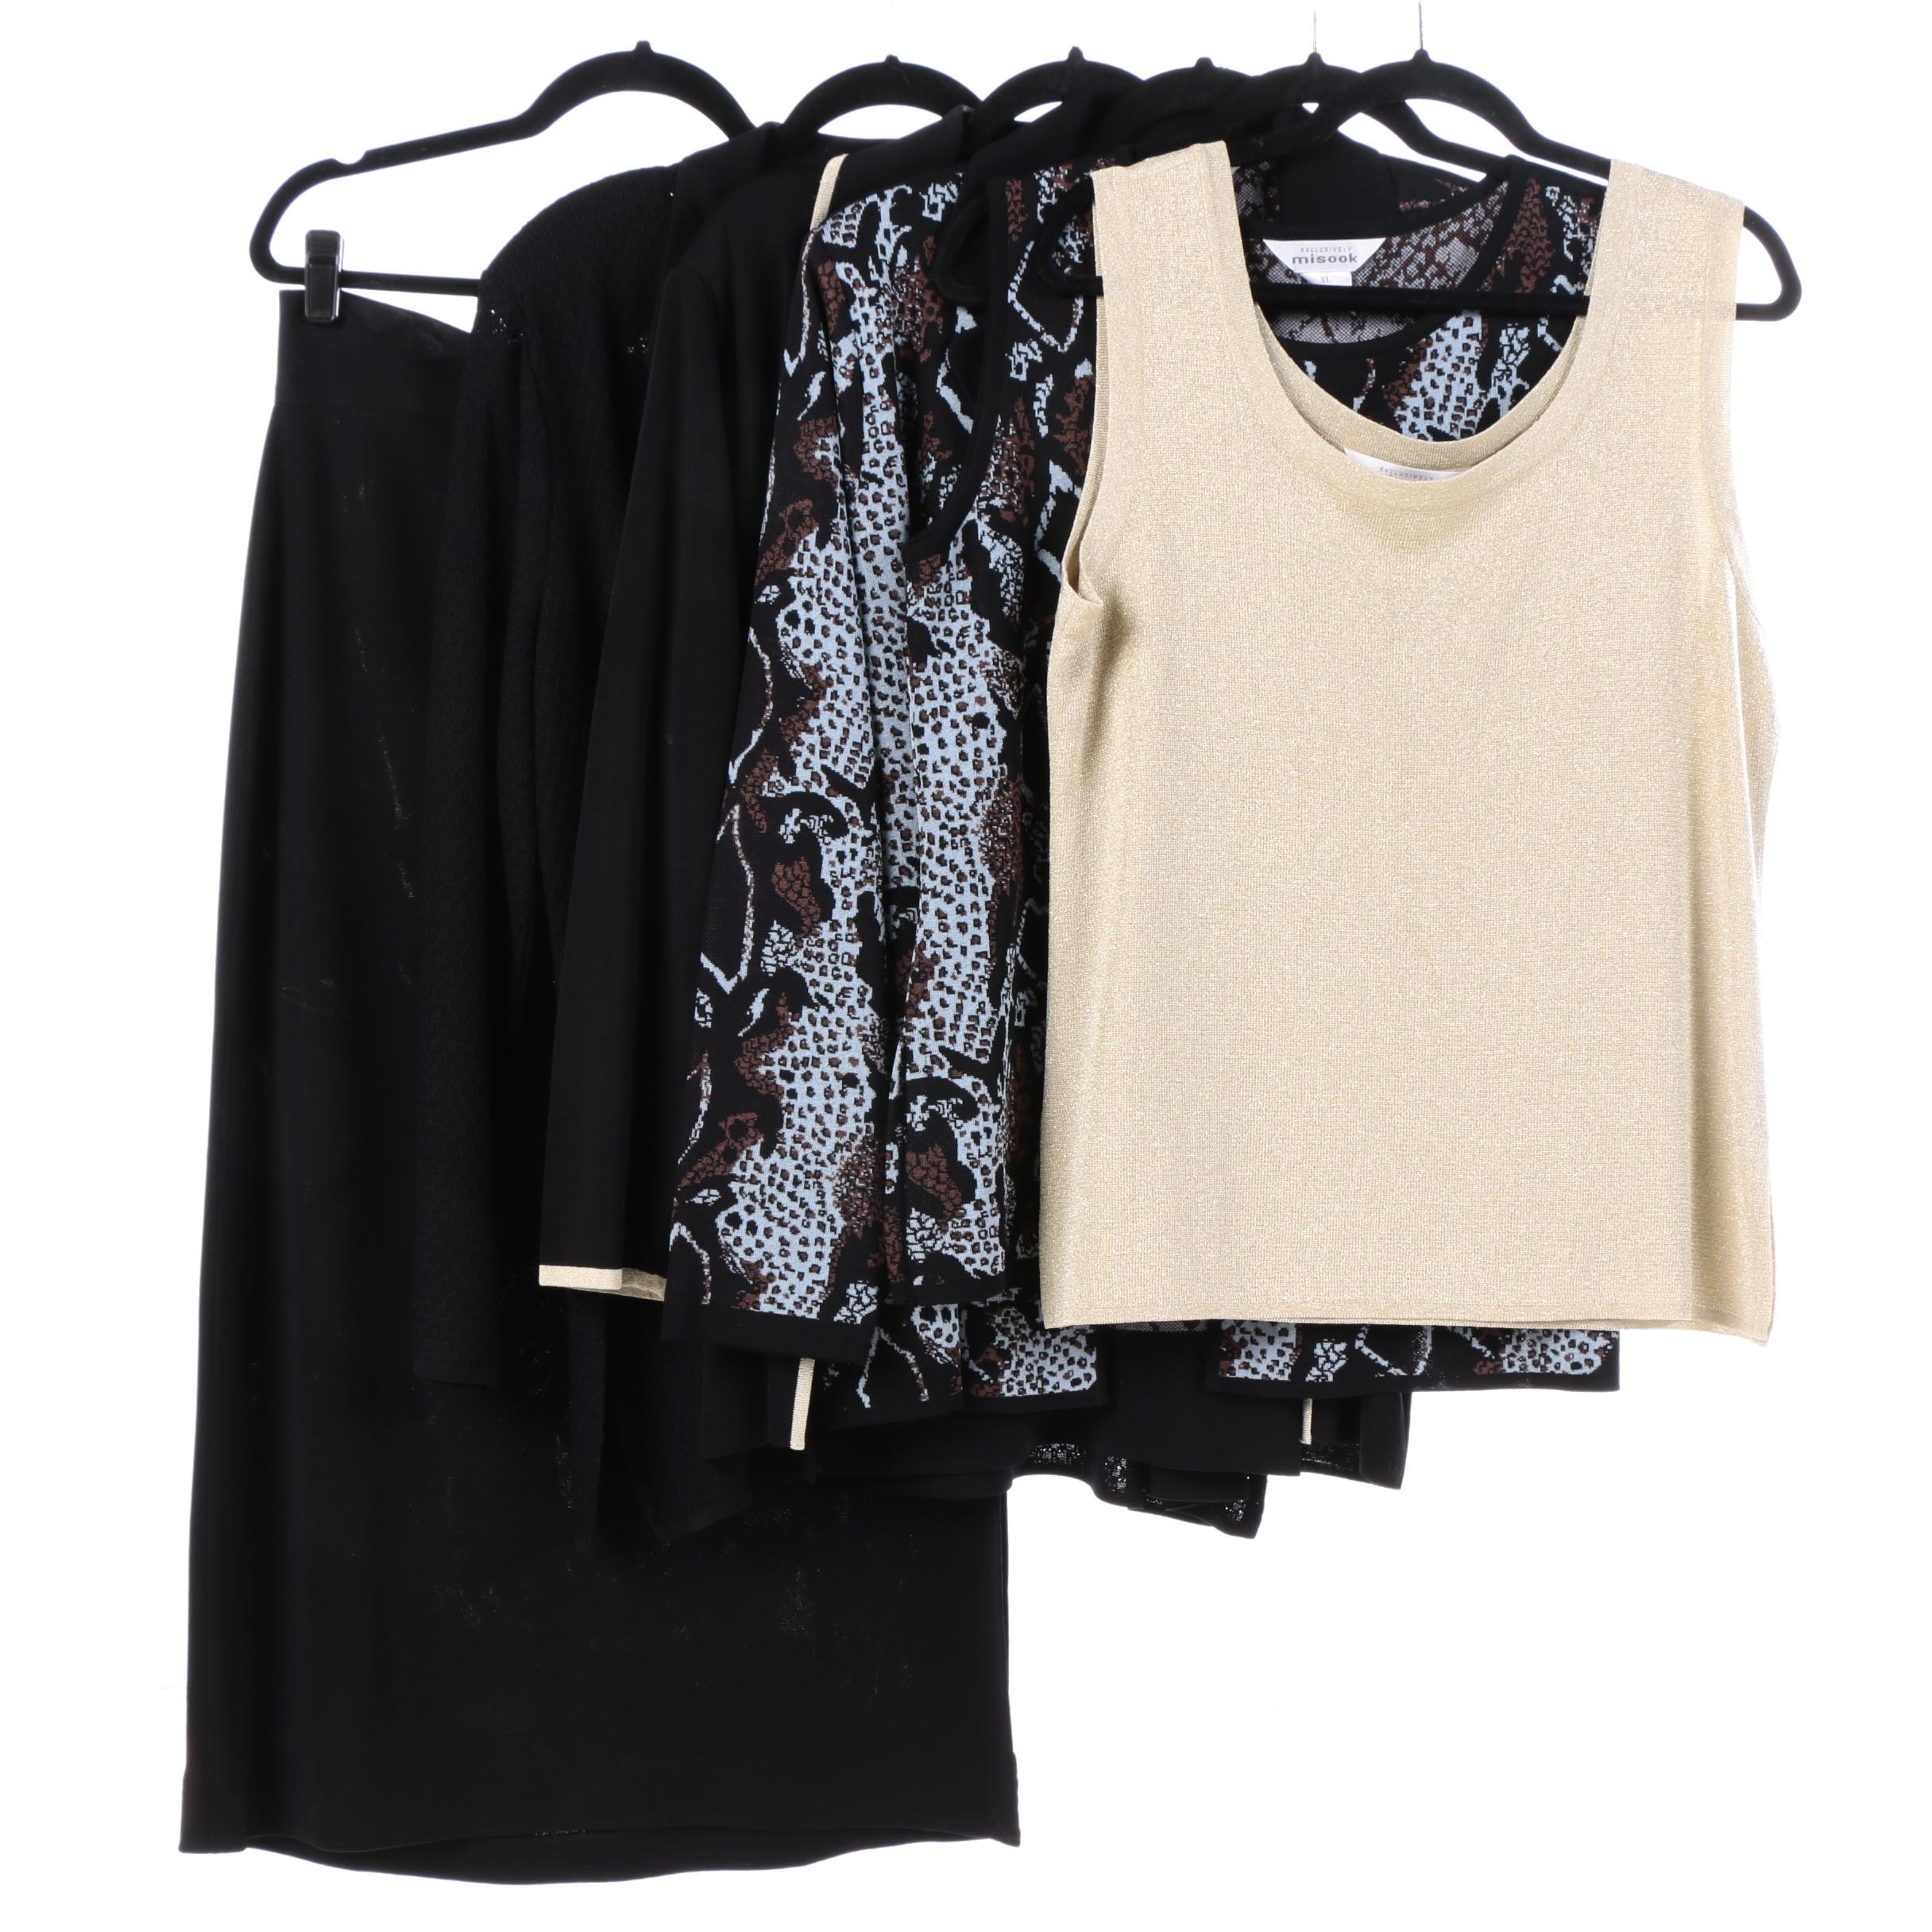 Women's Misook Knit Tops, Jackets and Skirts